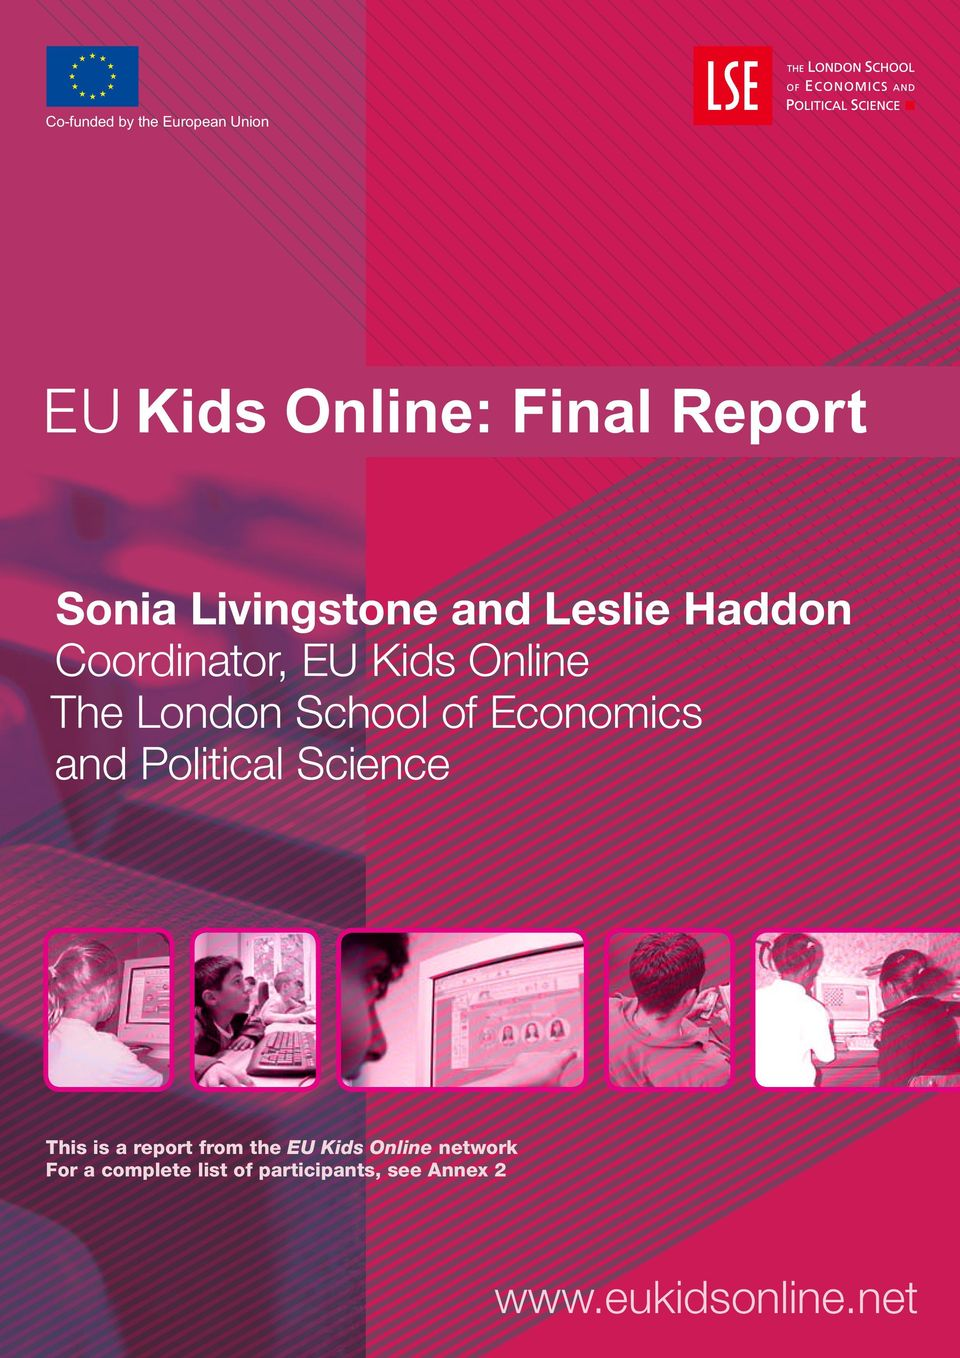 Political Science EU Kids Online Final Report This is a report from the EU Kids